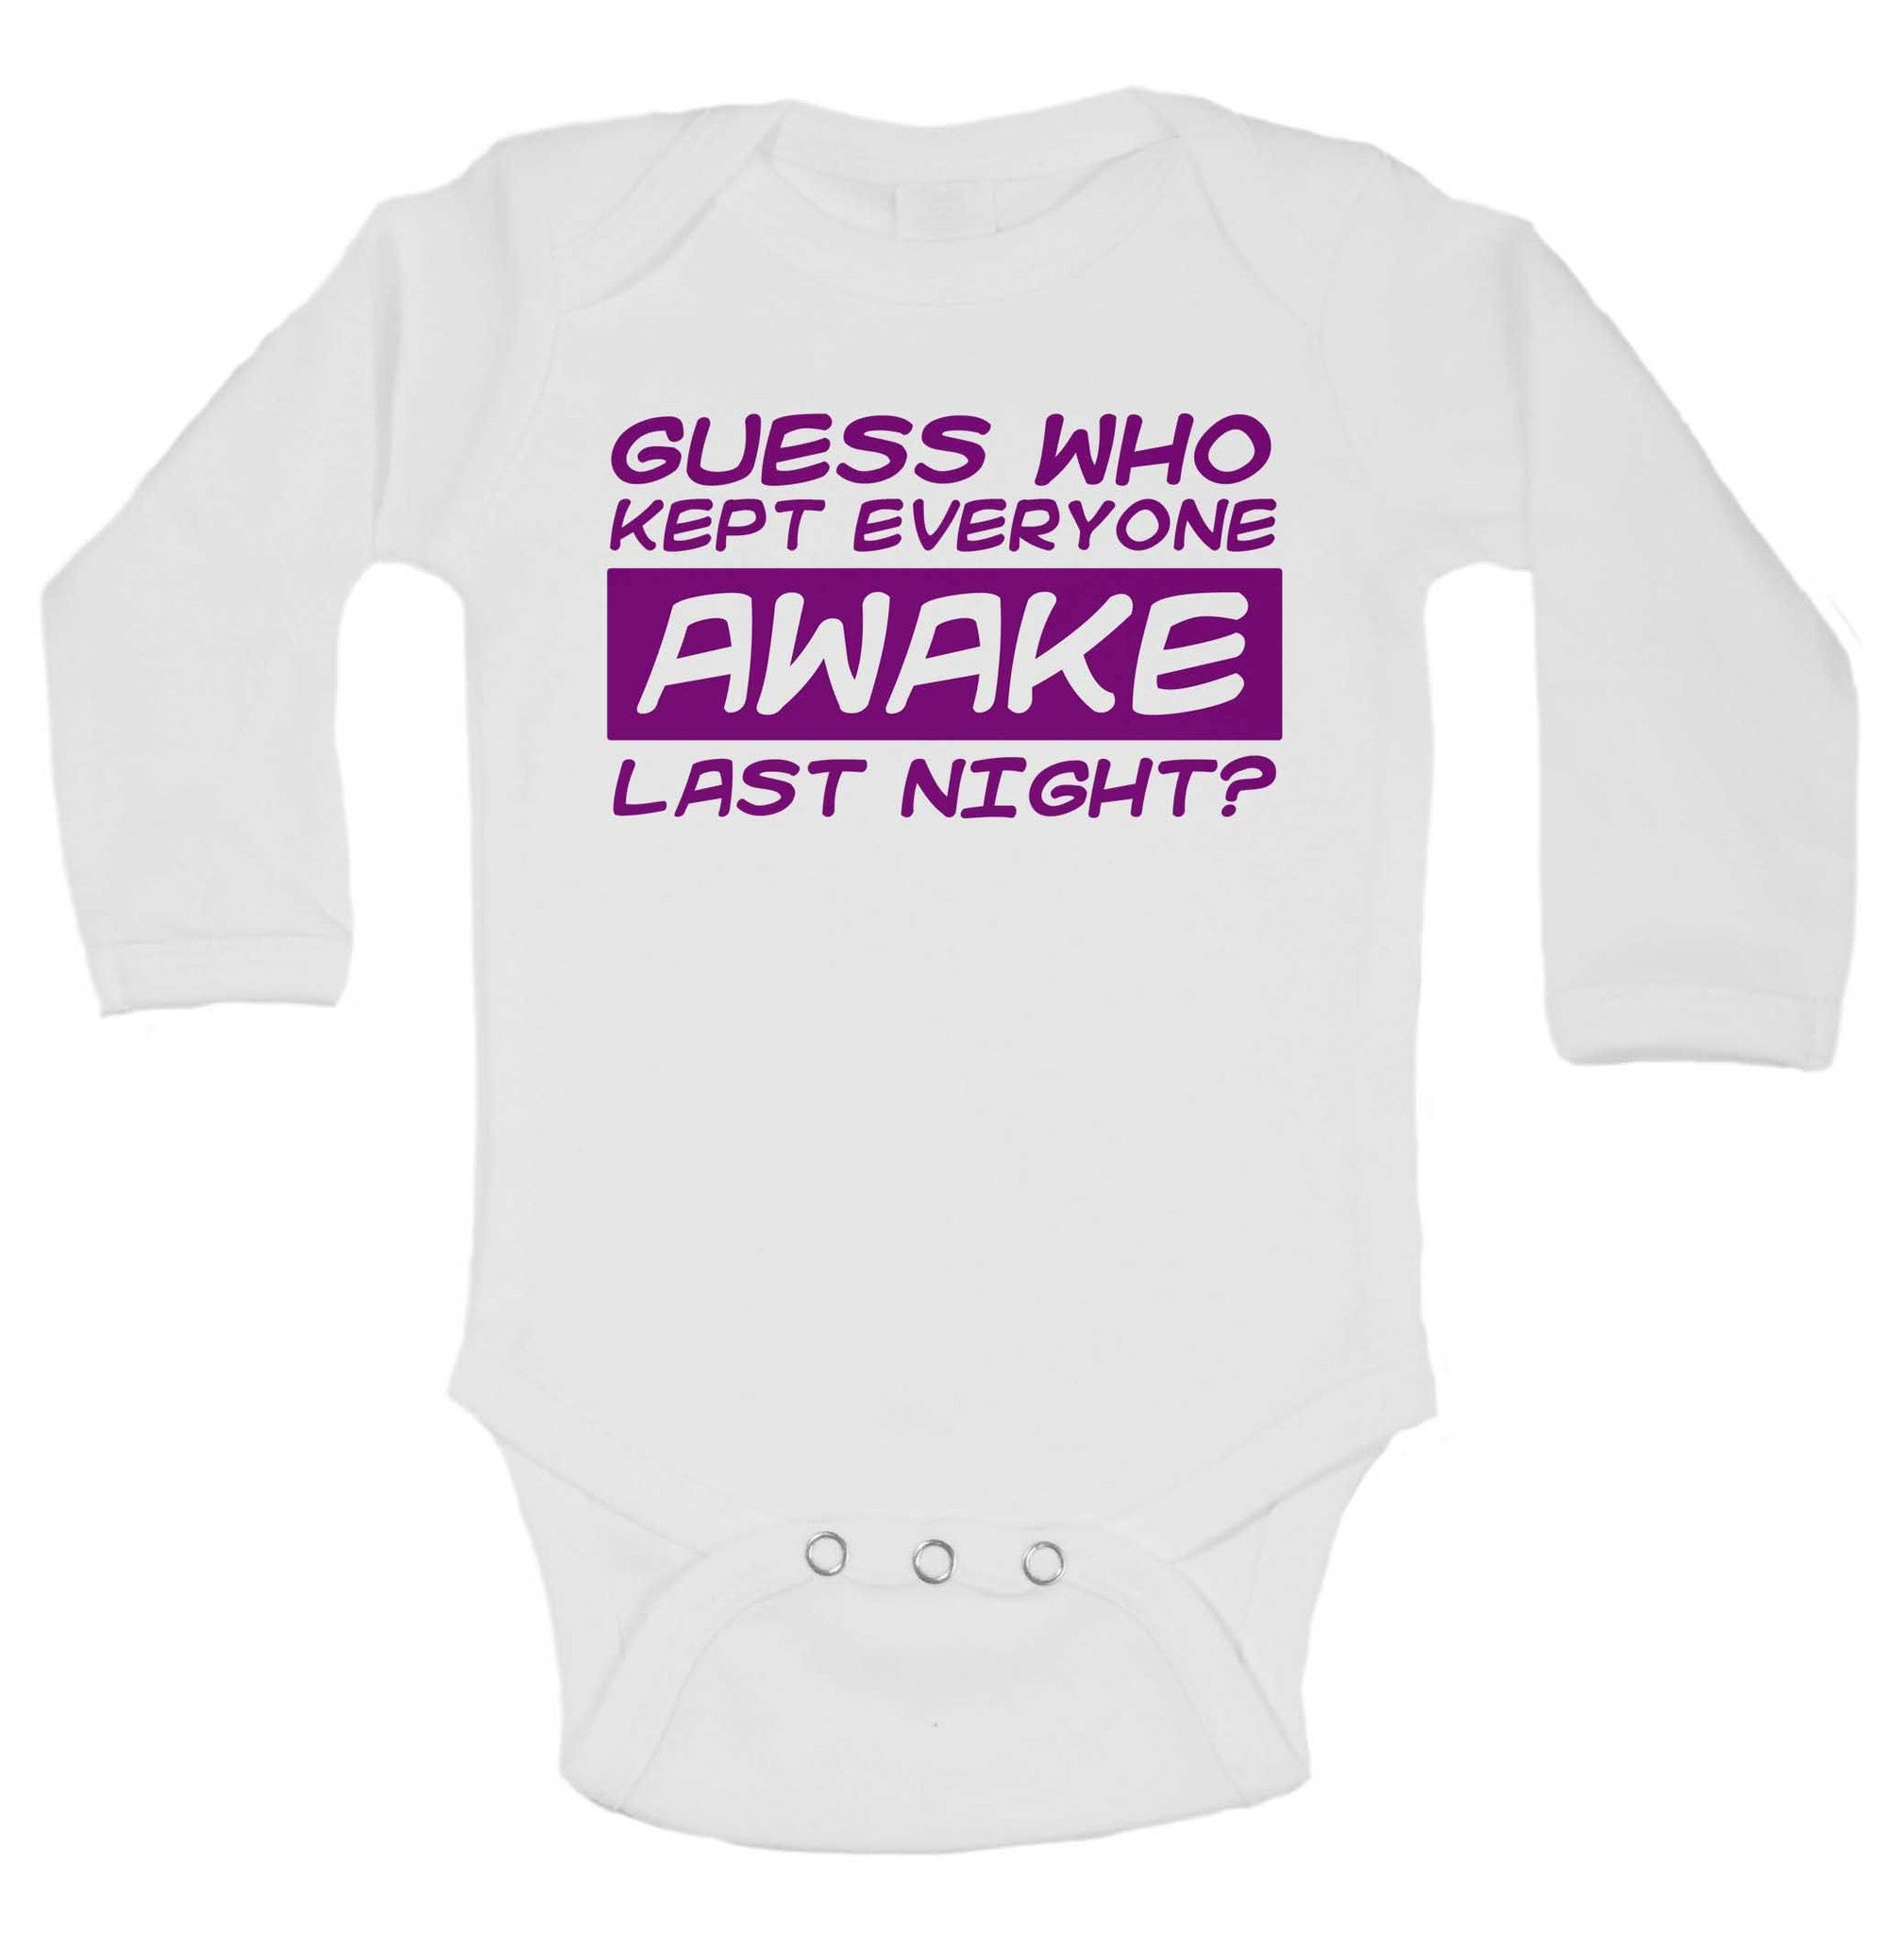 Guess Who Kept Everyone Awake Last Night? Funny Kids Onesie - B223 - Funny Shirts Tank Tops Burnouts and Triblends  - 1